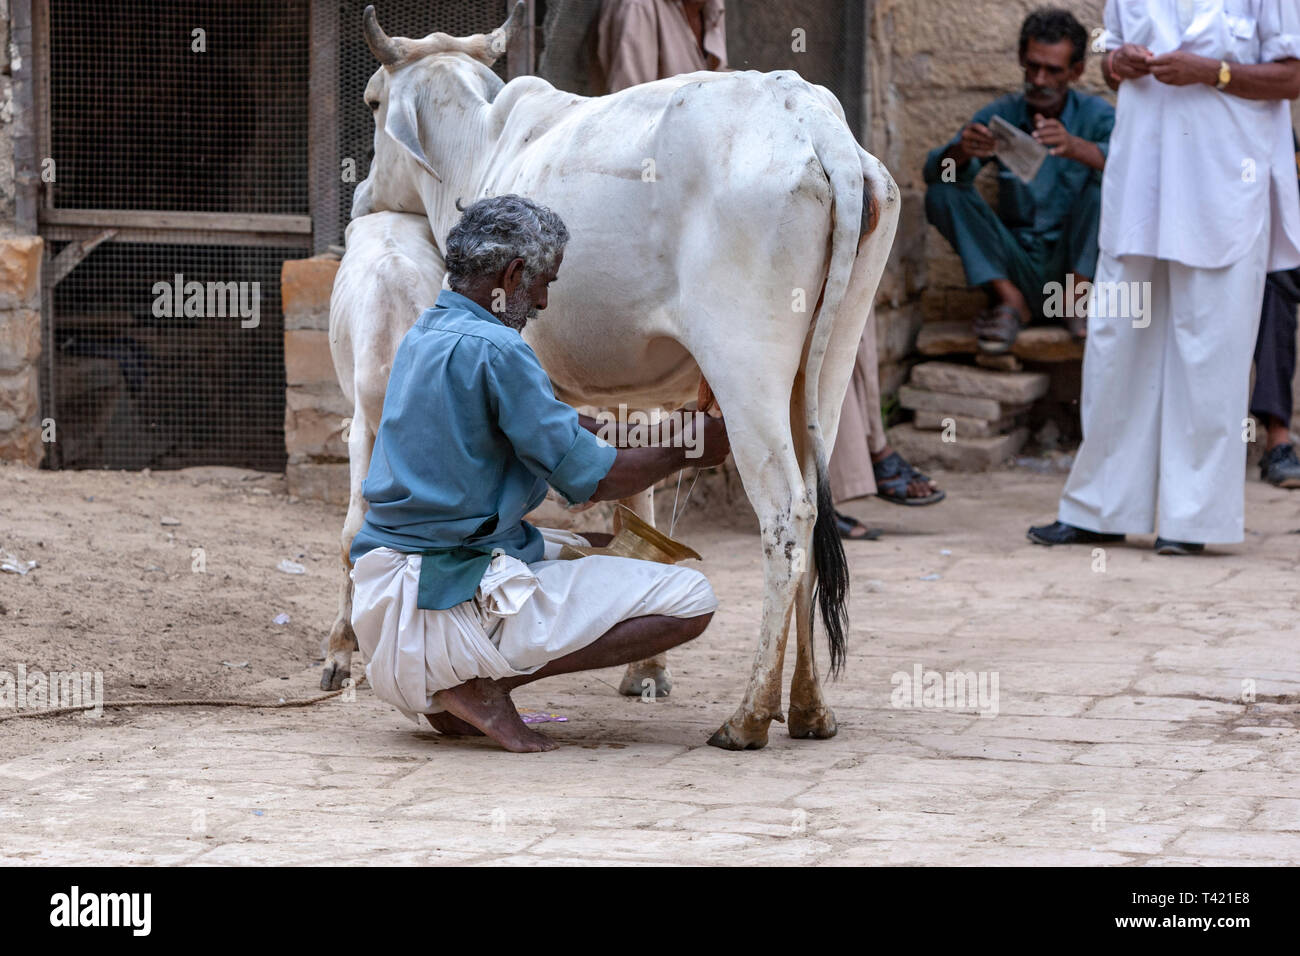 Man in charge of milk cows in Jaisalmer, Rajasthan, India - Stock Image